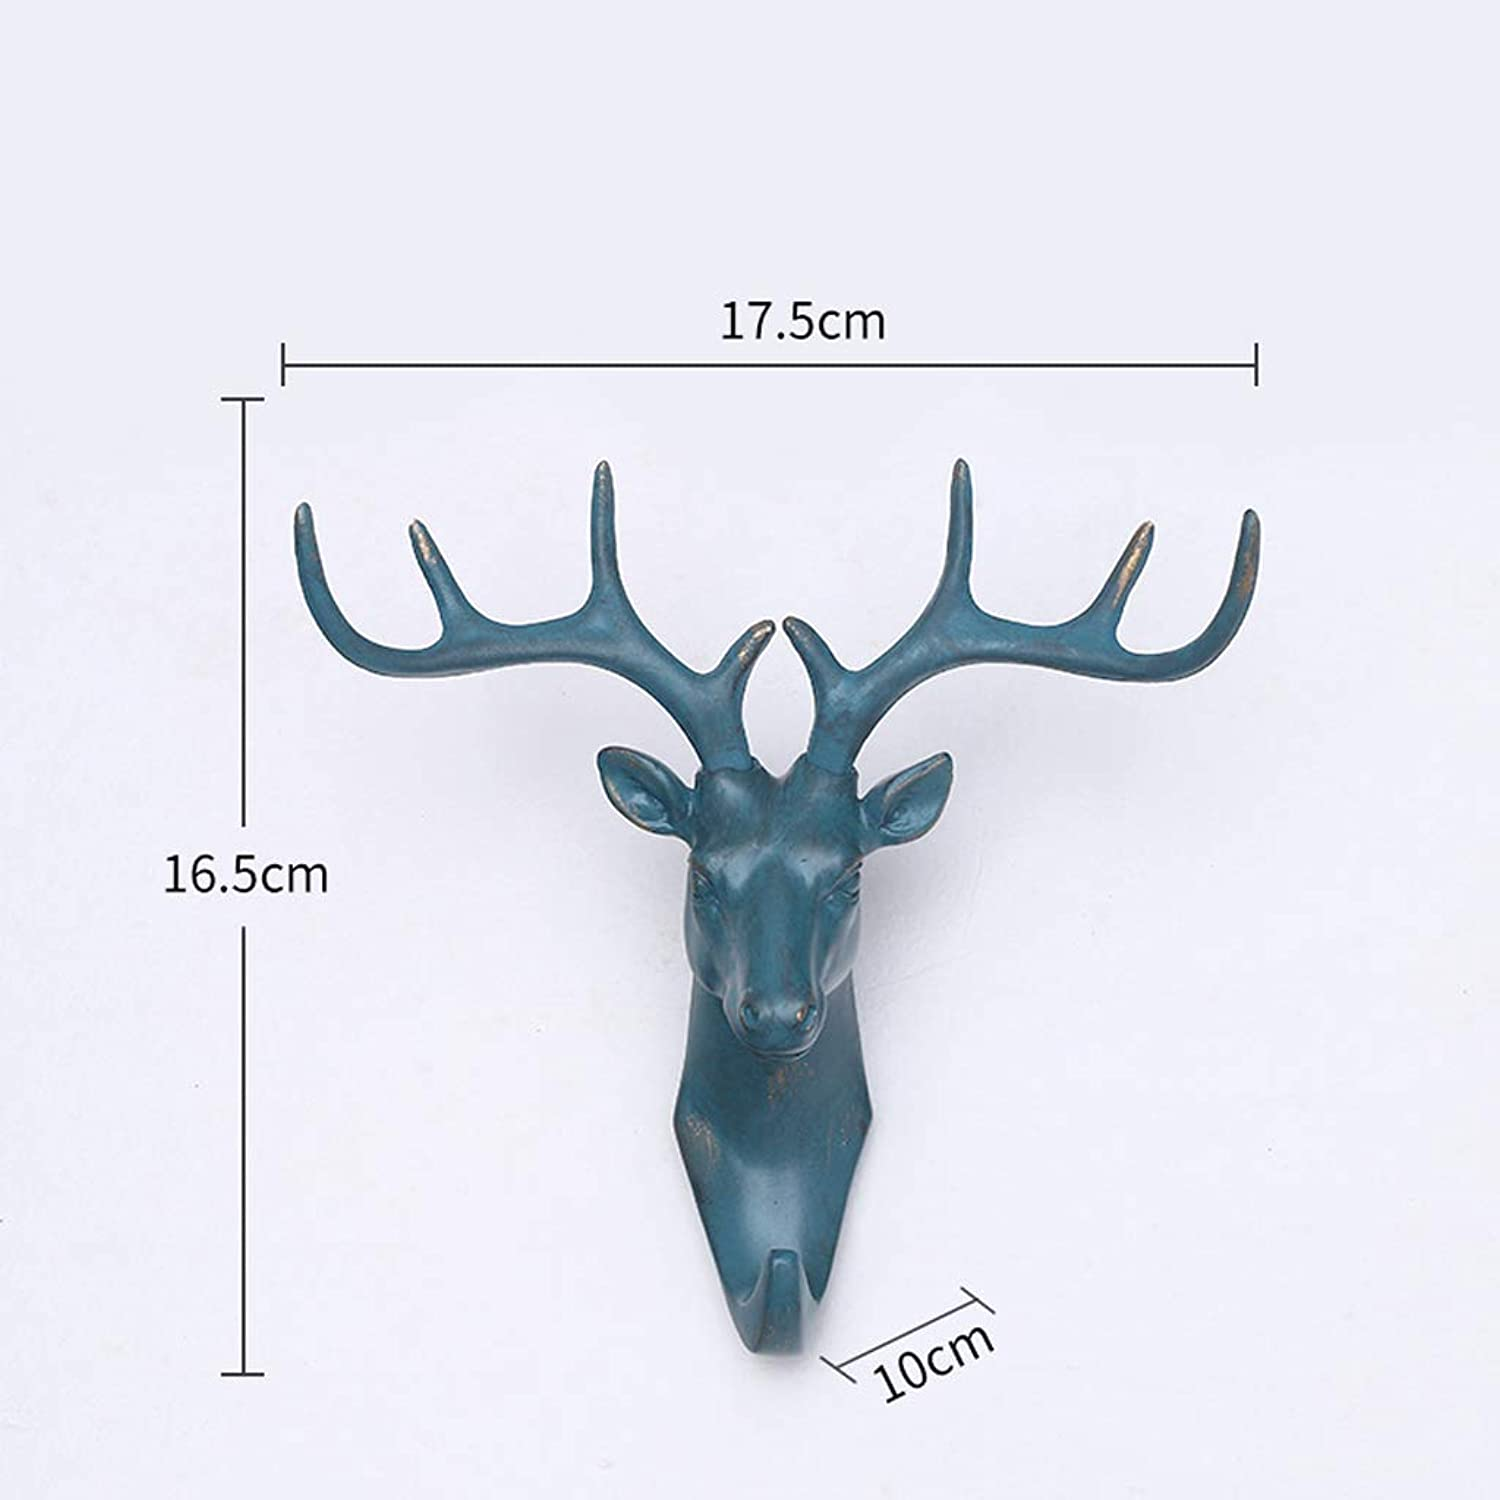 XUYRENP European Creative Home Wall Decoration Three-Dimensional Animal Bronze Deer Head Hook Wall Decoration Key Holder